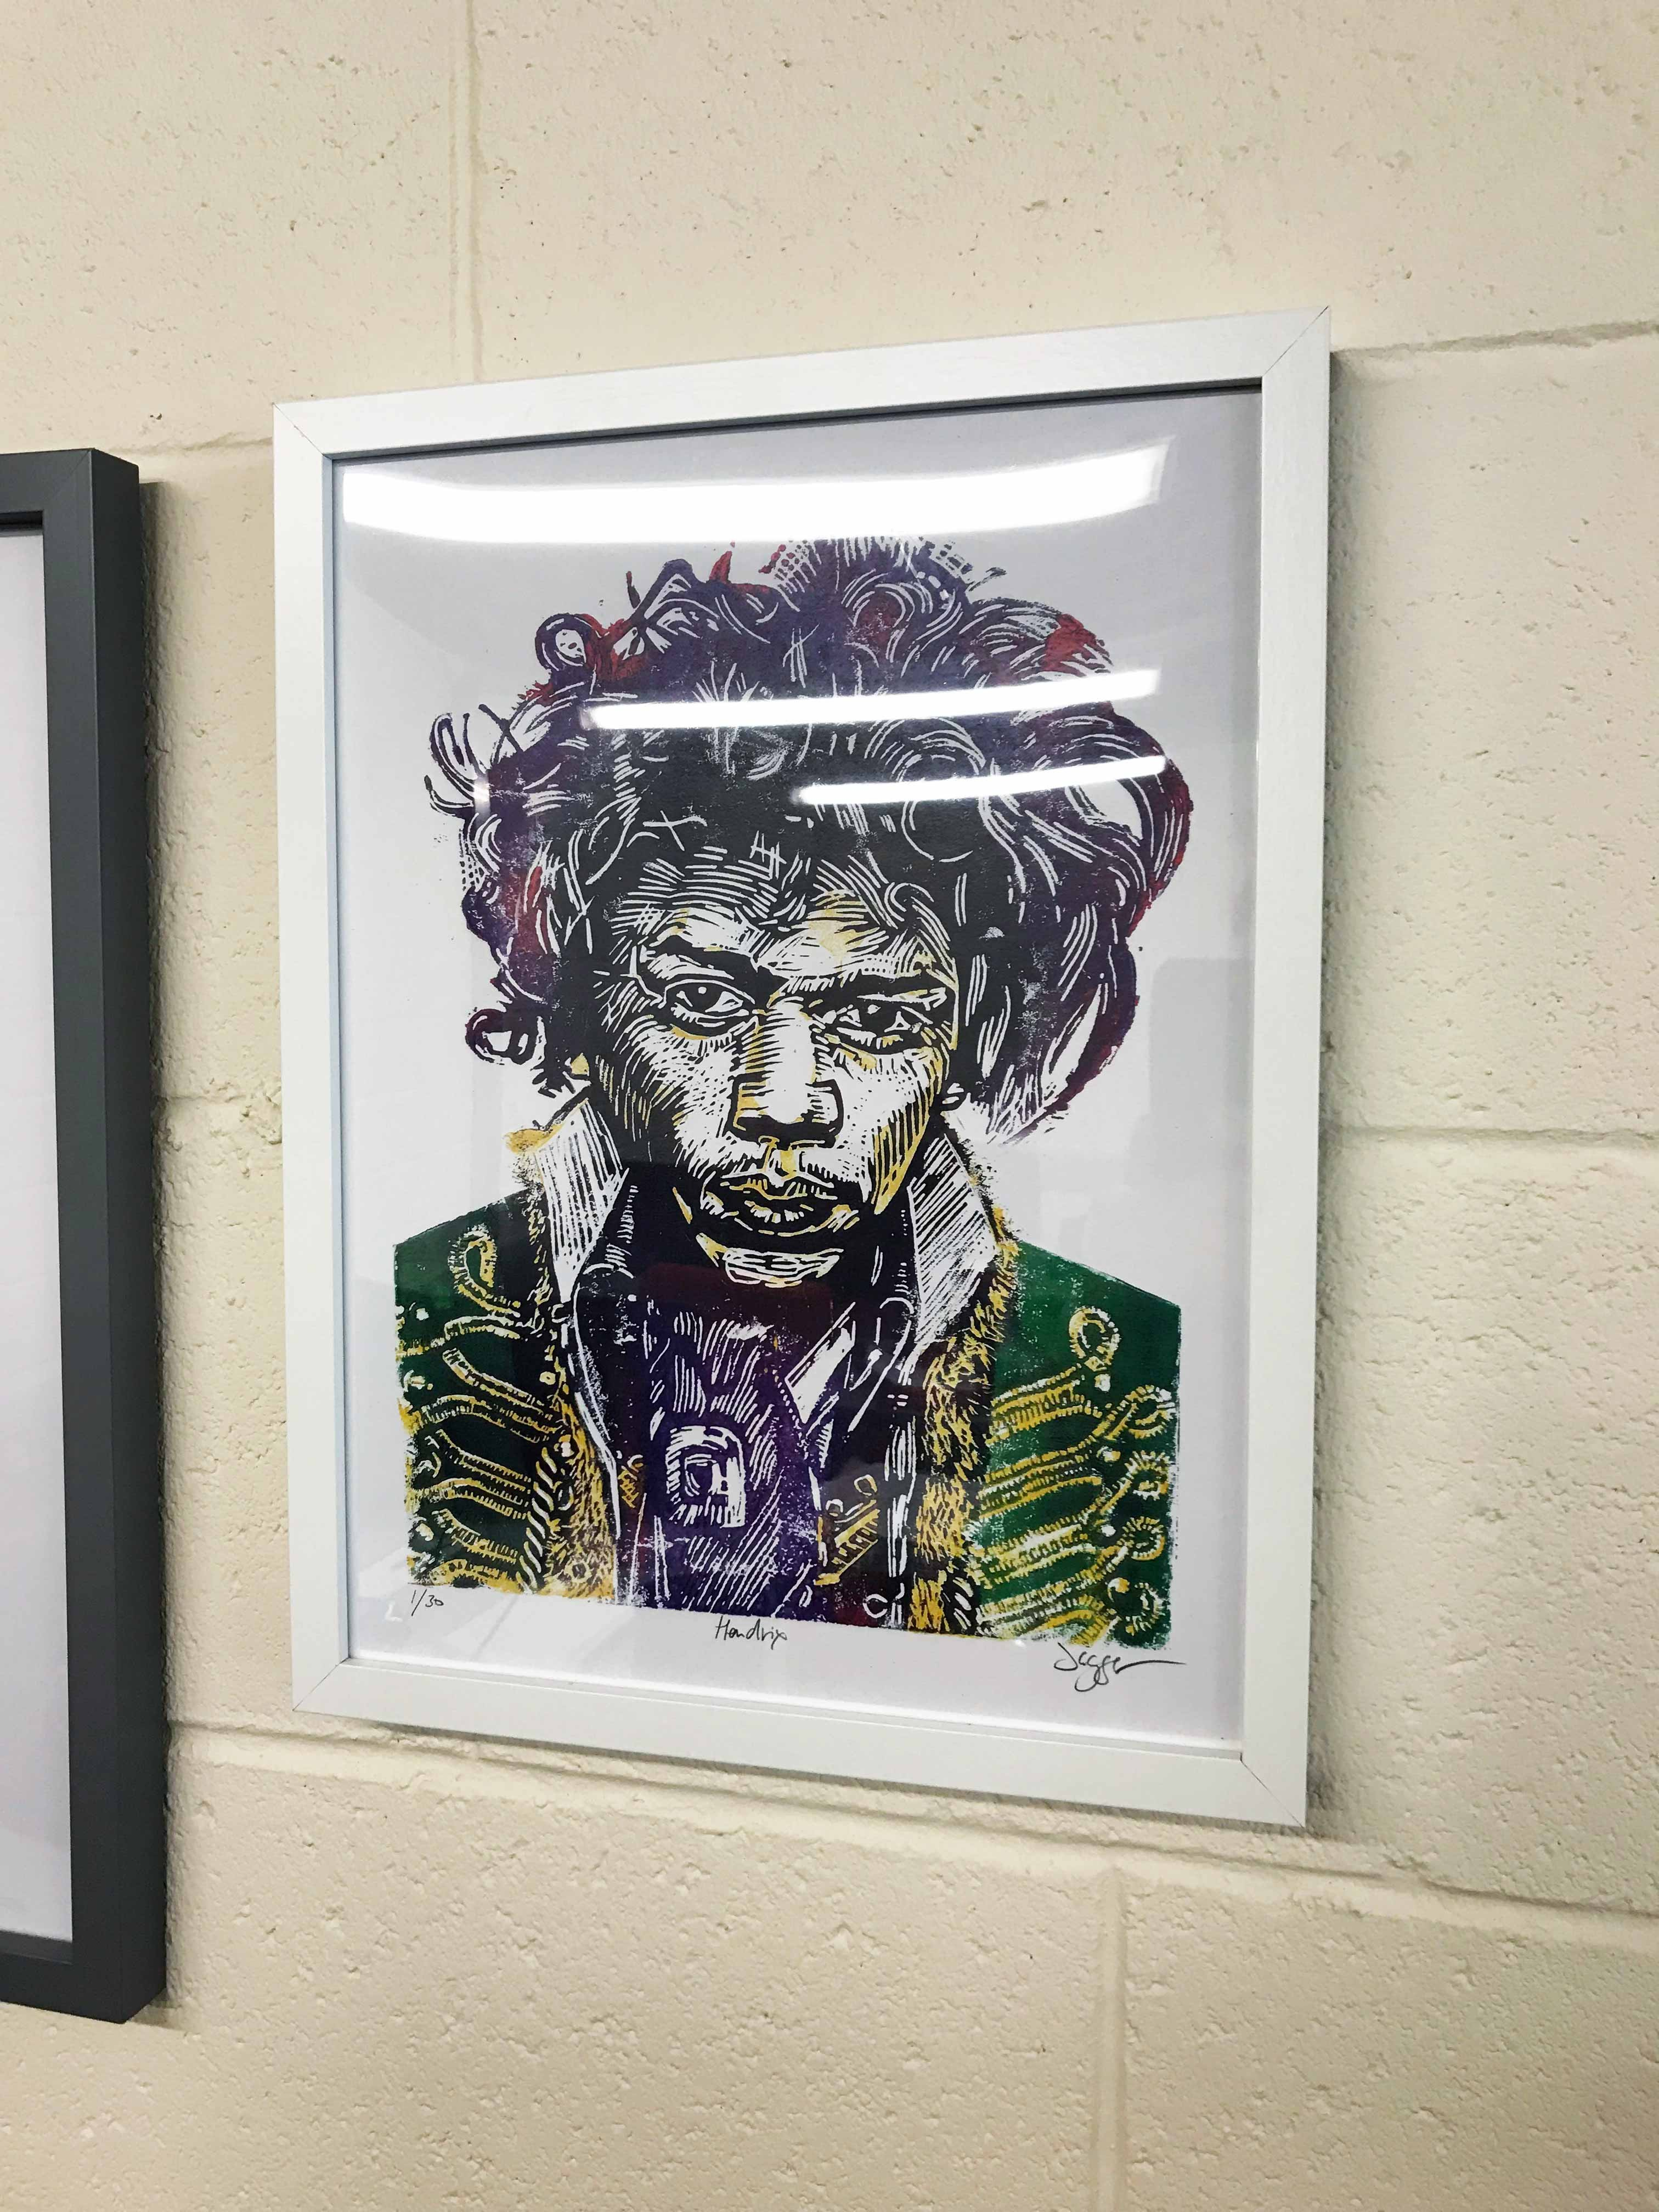 Wall mounted framed print of Hendrix